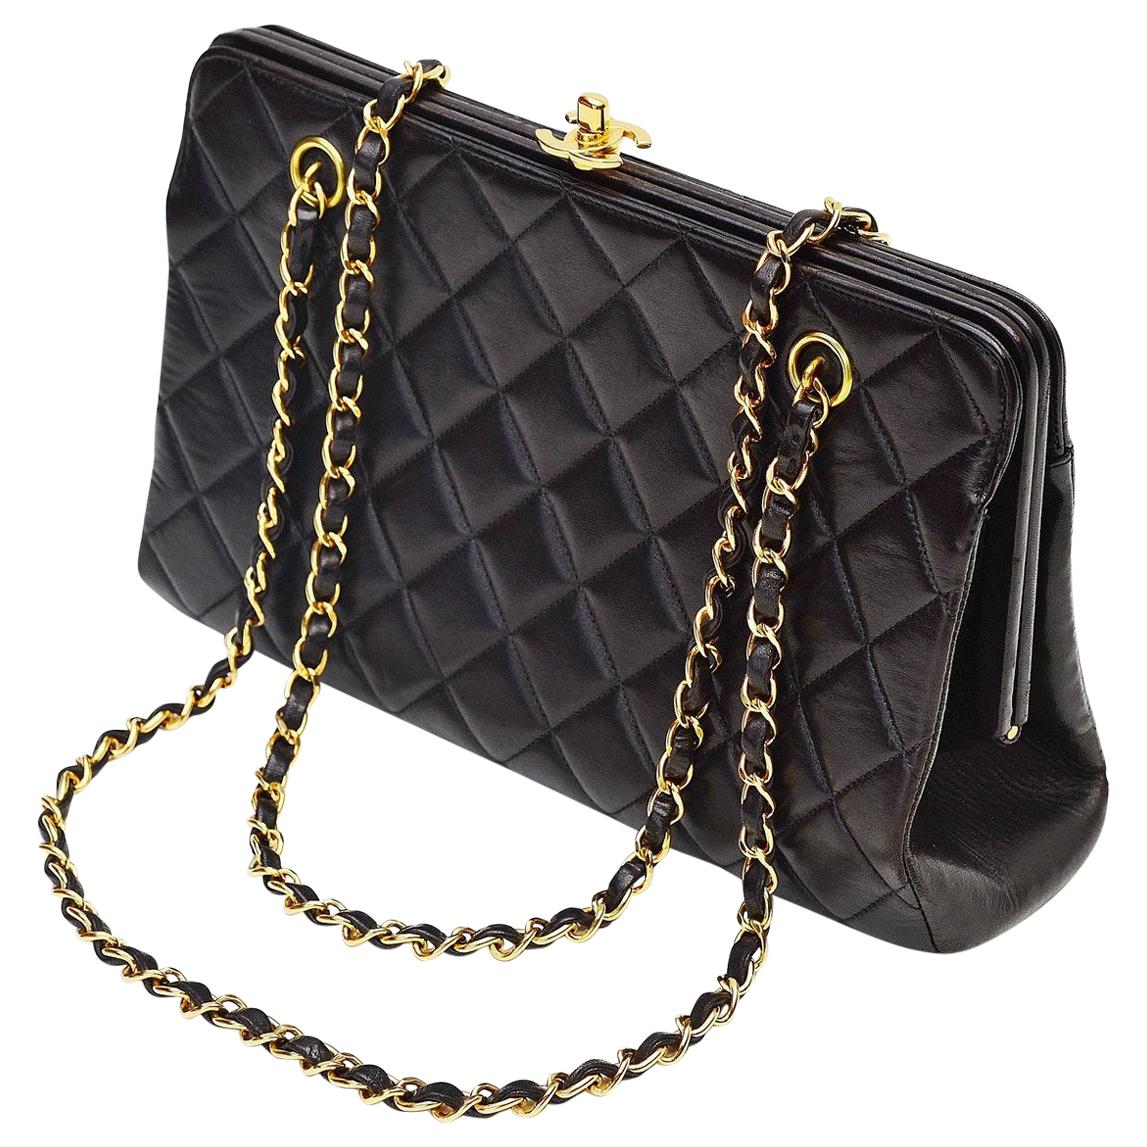 Chanel Lambskin Vintage Shoulder Bag CC top lock